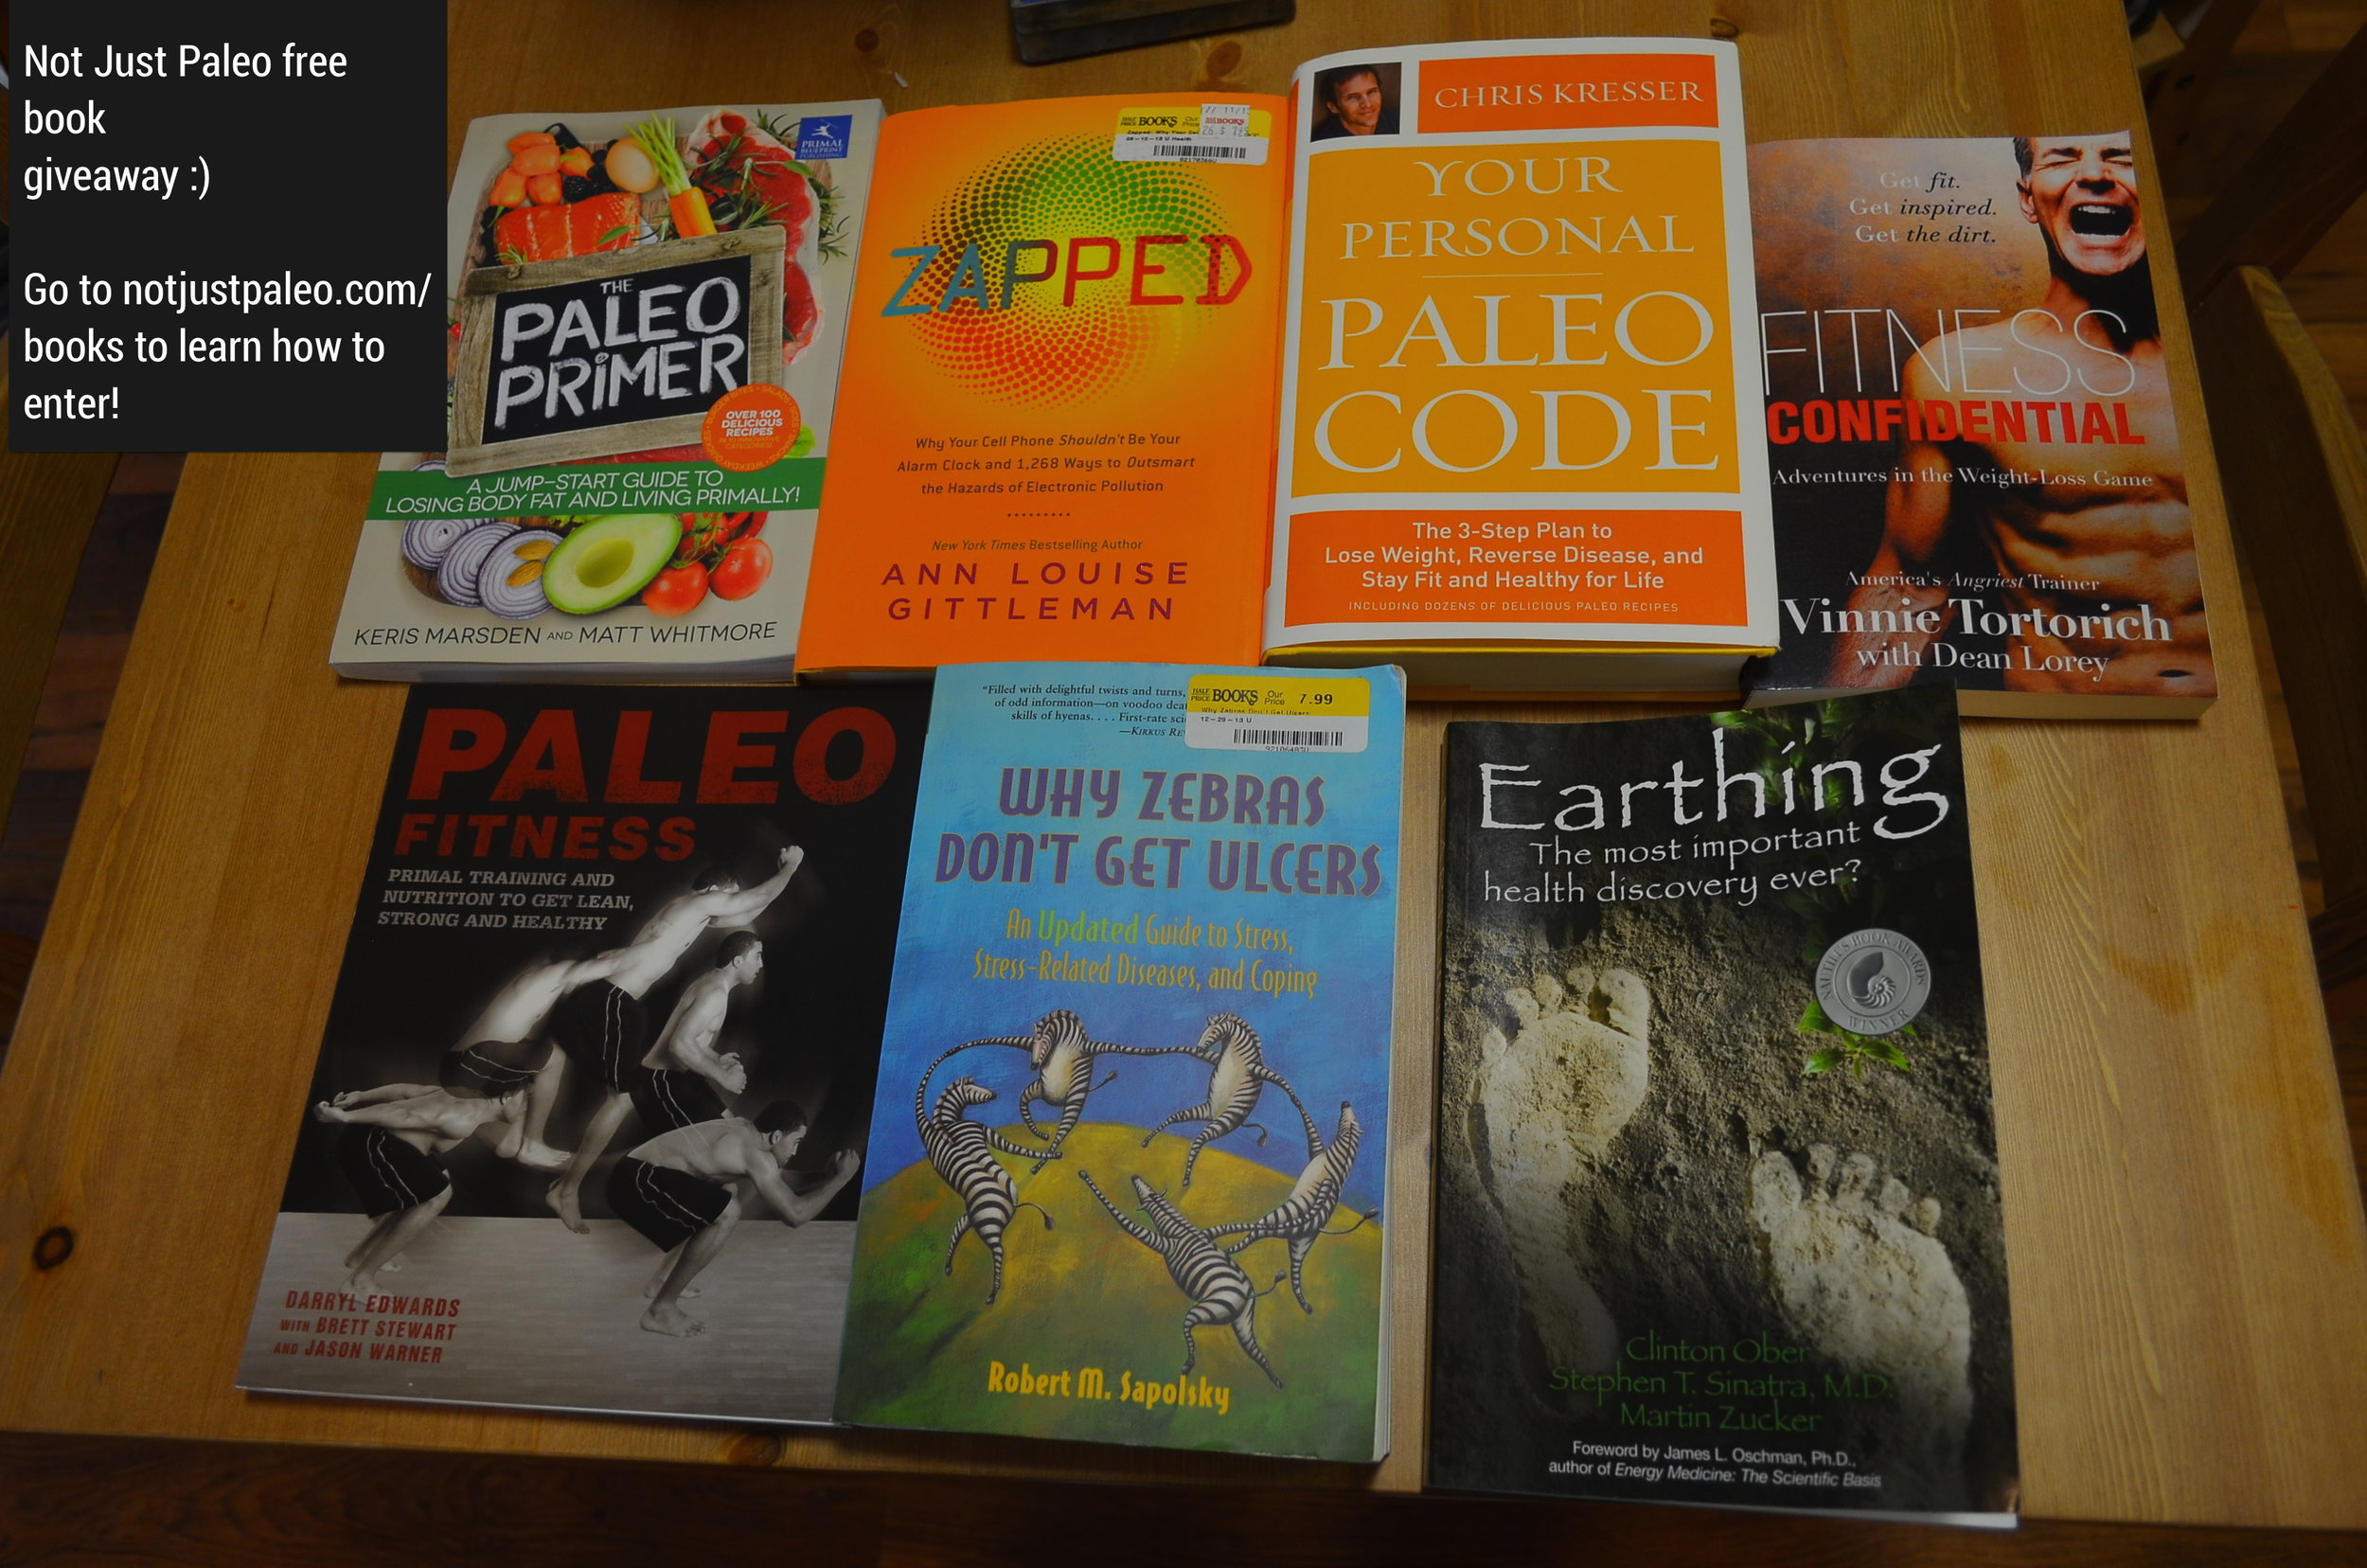 Free Paleo Book Giveaway by Not Just Paleo